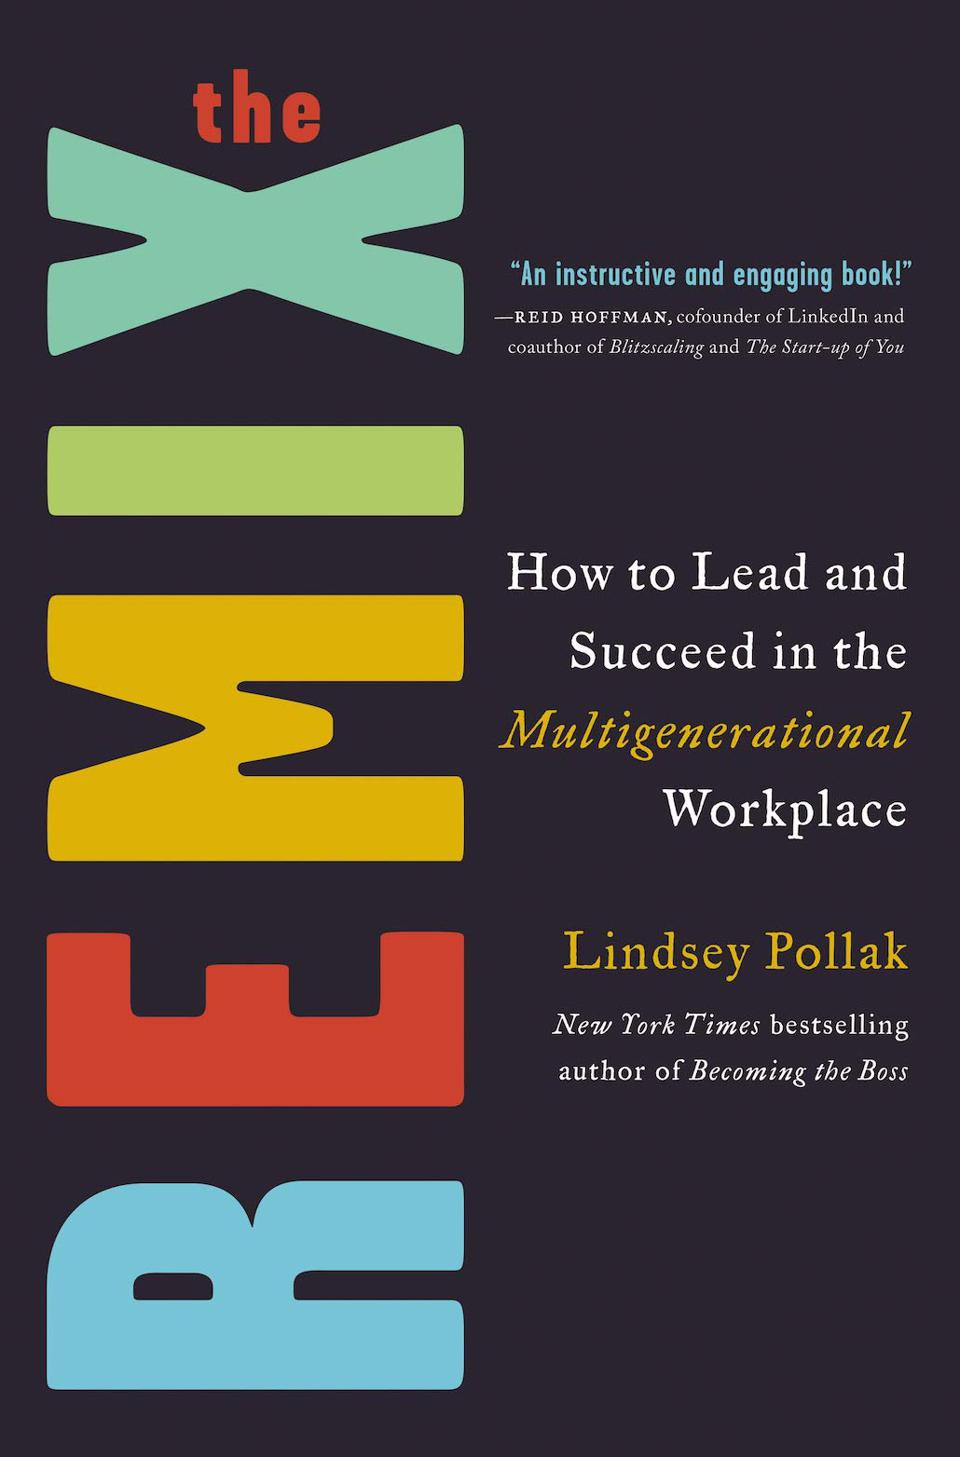 The Remix: How to Lead and Succeed in the Multigenerational Workplace by Lindsey Pollak